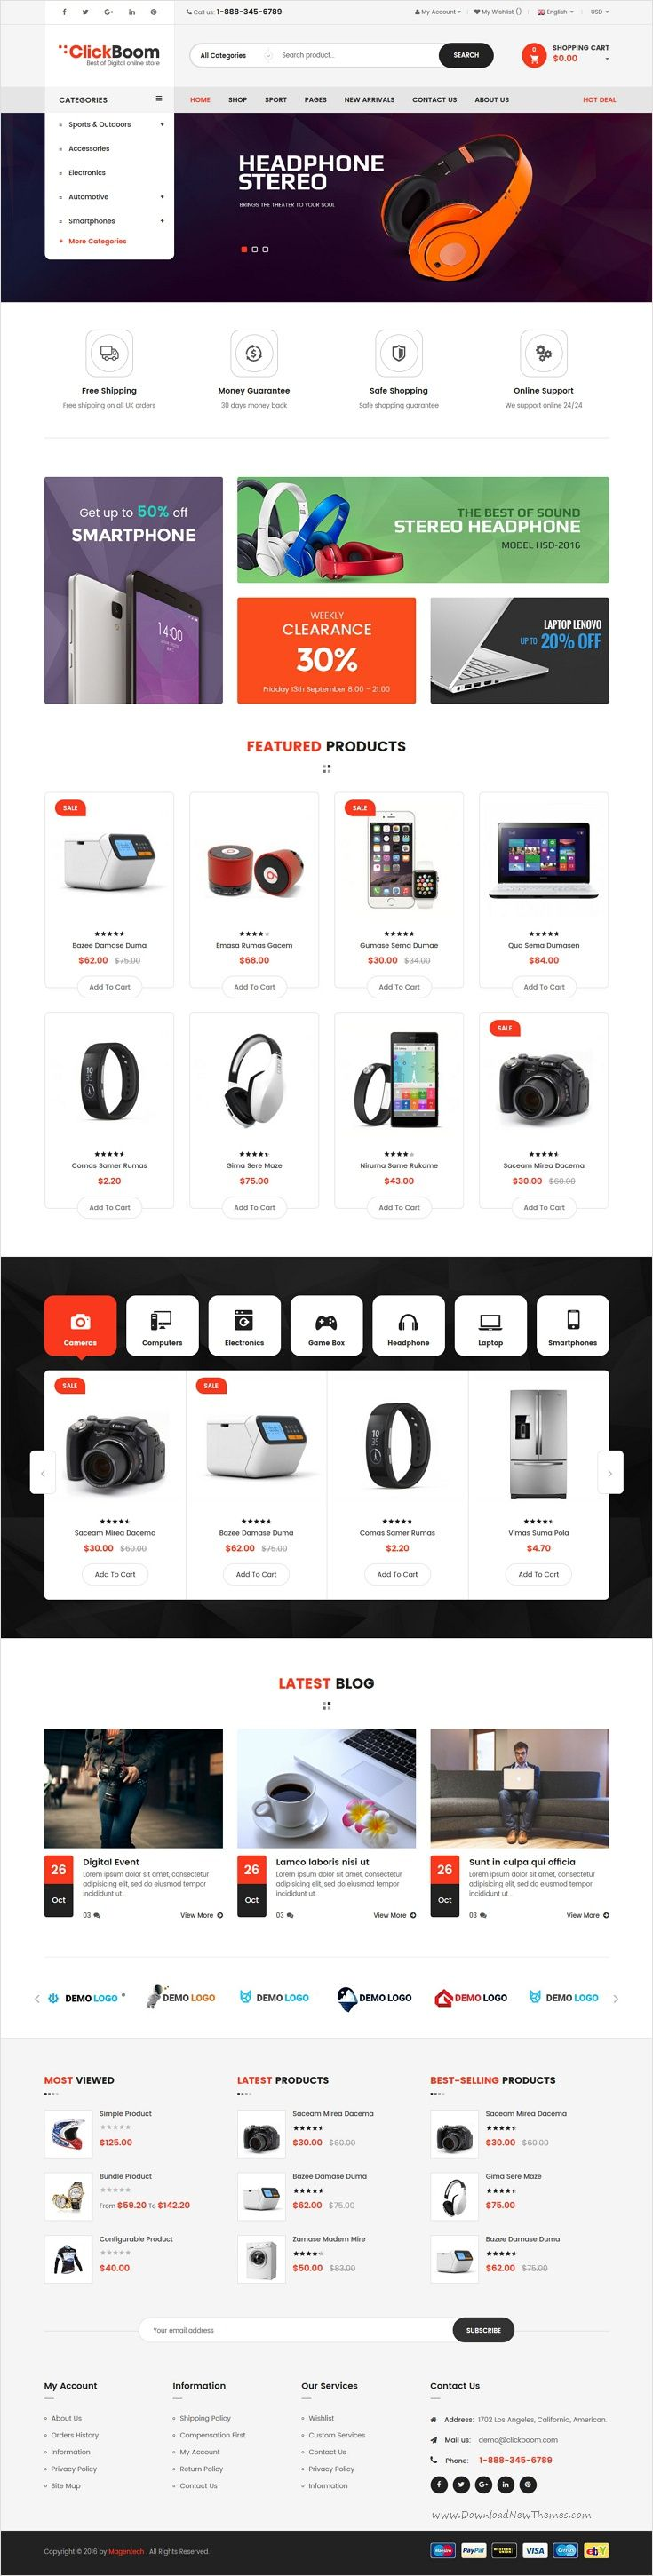 ClickBoom is a beautifully design #Magento 2 theme for stunning #digital #shop eCommerce website with 5 different homepage layouts download now➩ https://themeforest.net/item/clickboom-responsive-magento-2-theme-for-digitalfashion-online-shop/18482189?ref=Datasata